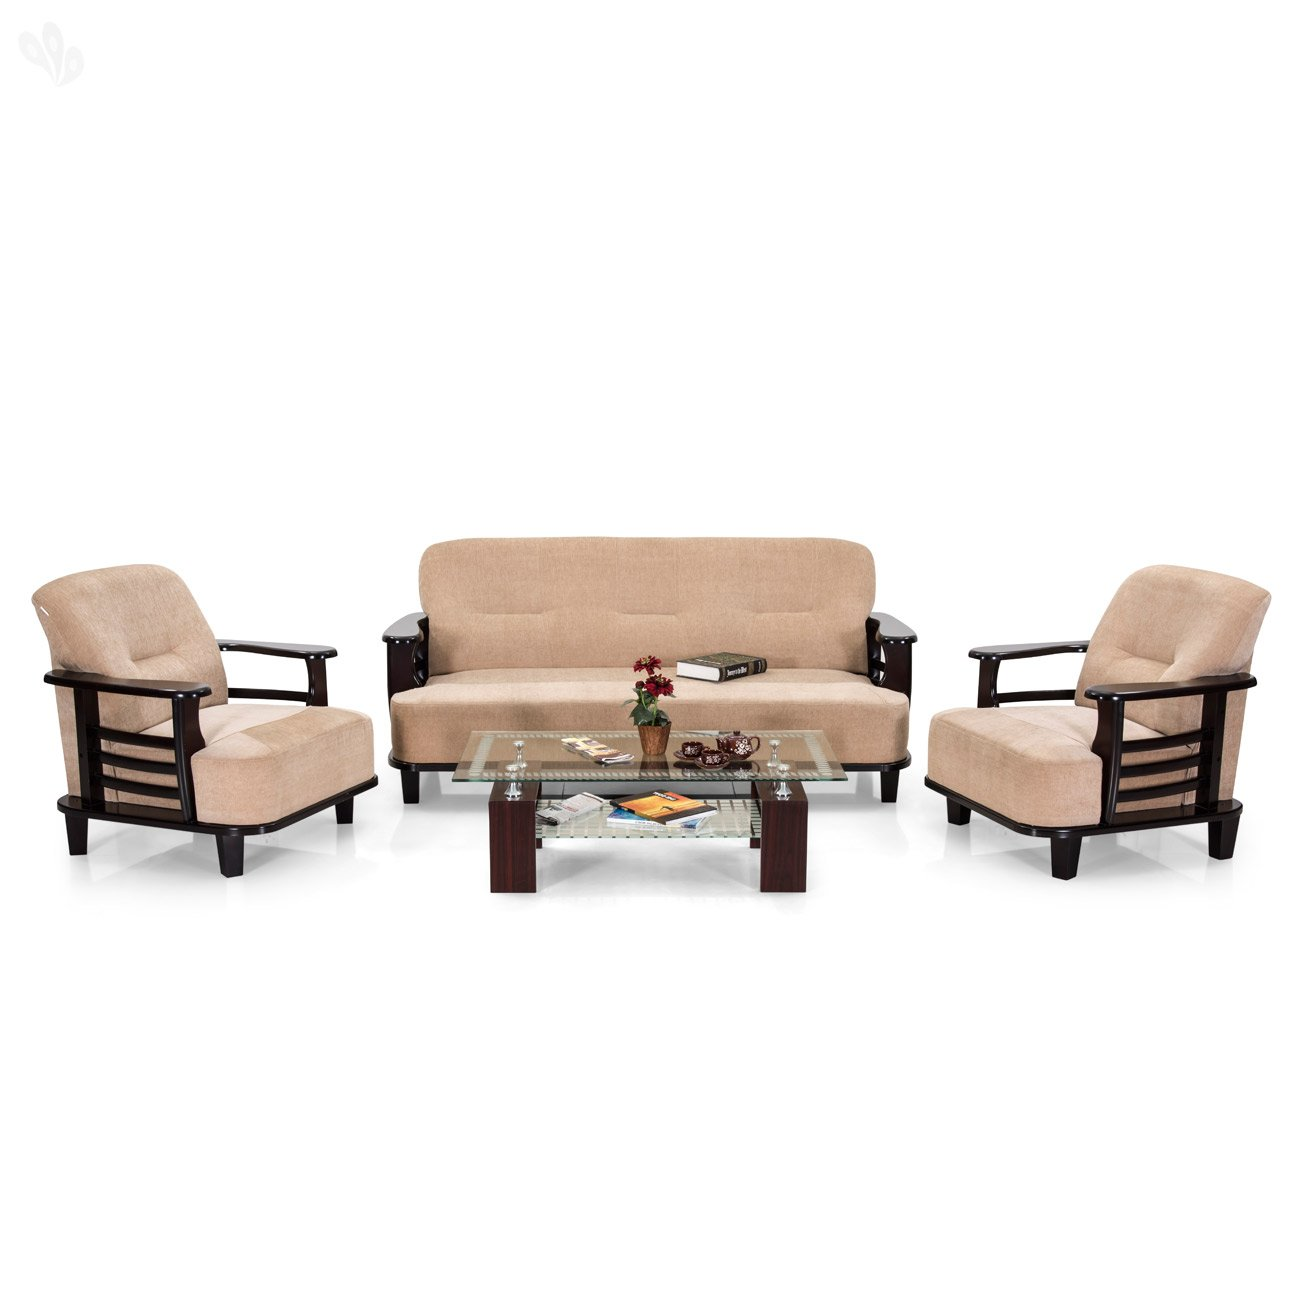 Royal Oak Comfort Sofa Set 3+1+1 (Cream): Amazon.in: Home & Kitchen